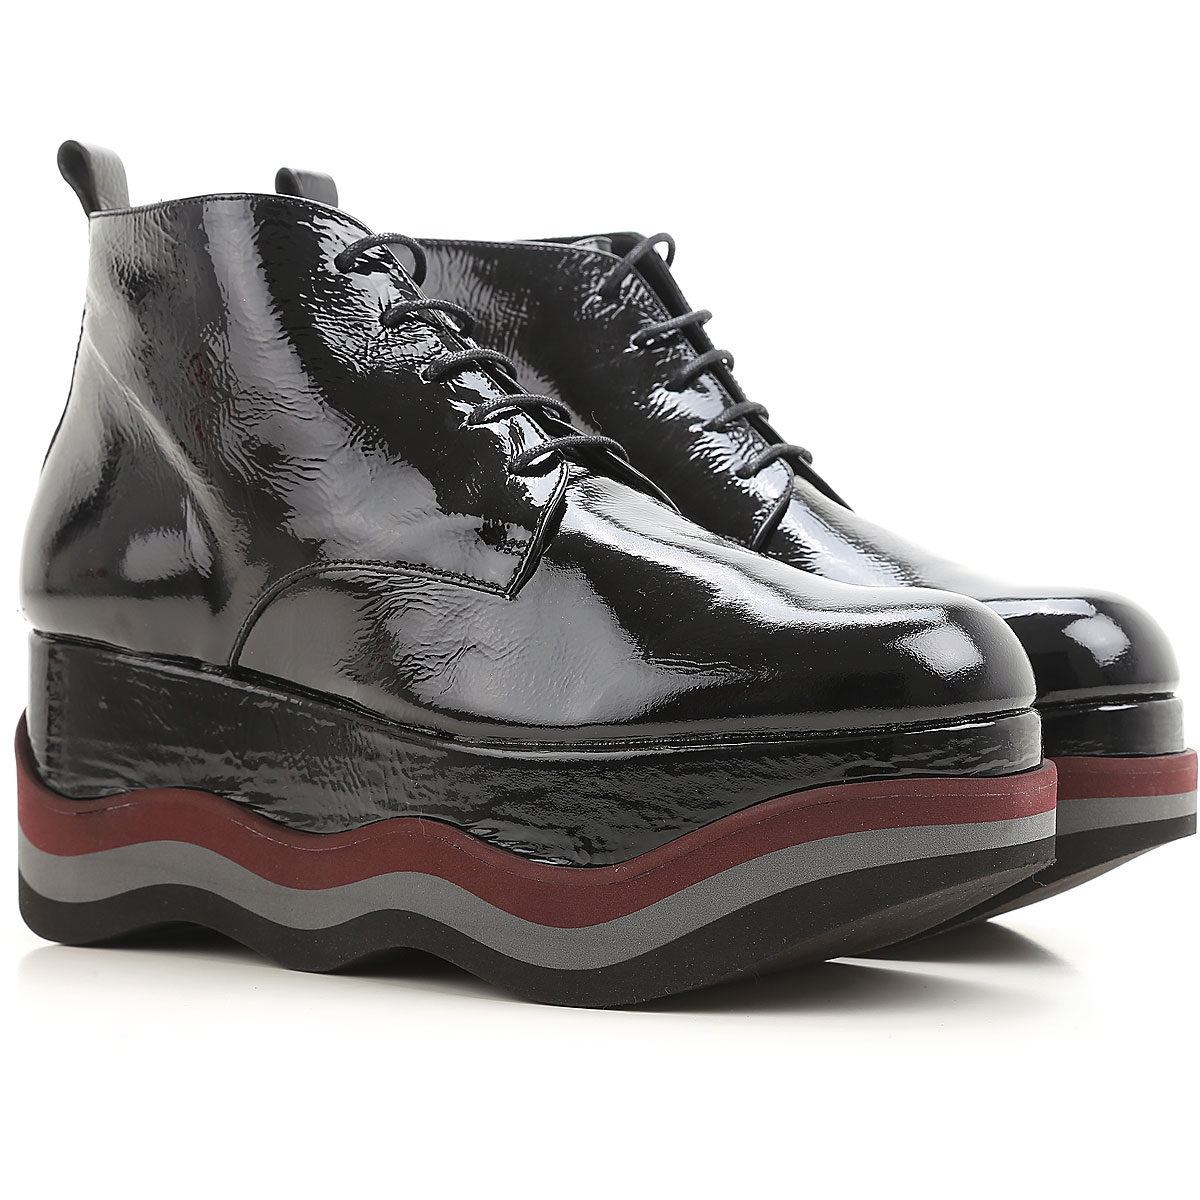 Image of Paloma Barcelo Boots for Women, Booties On Sale in Outlet, Black, Patent Leather, 2017, 6 8